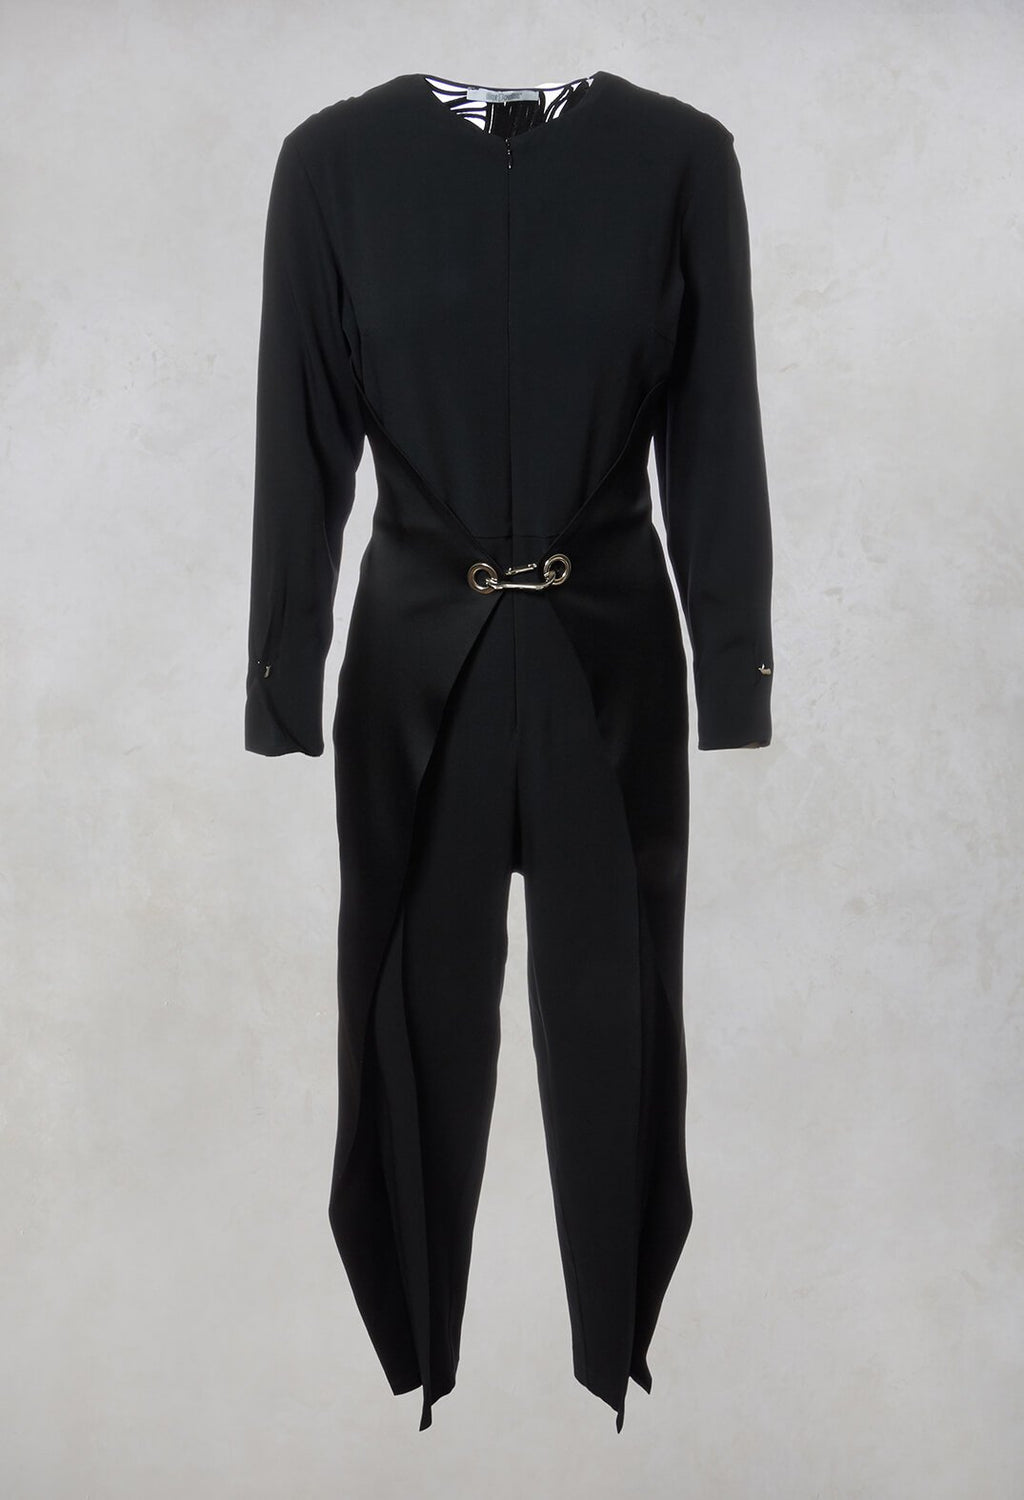 Carabiner Jumpsuit in Intrigue